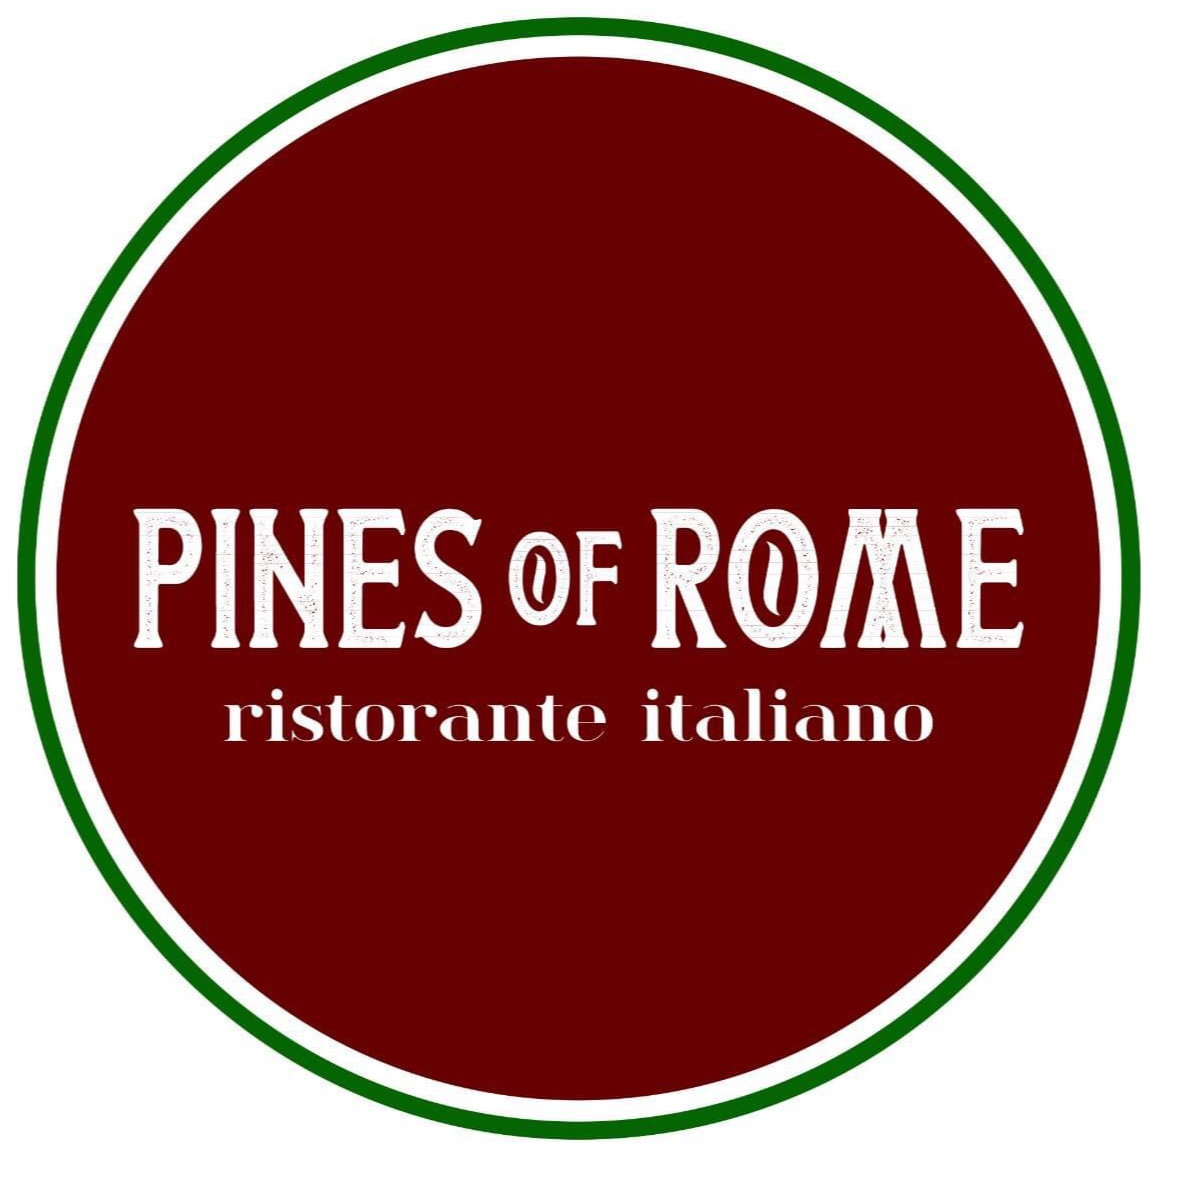 Pines of Rome